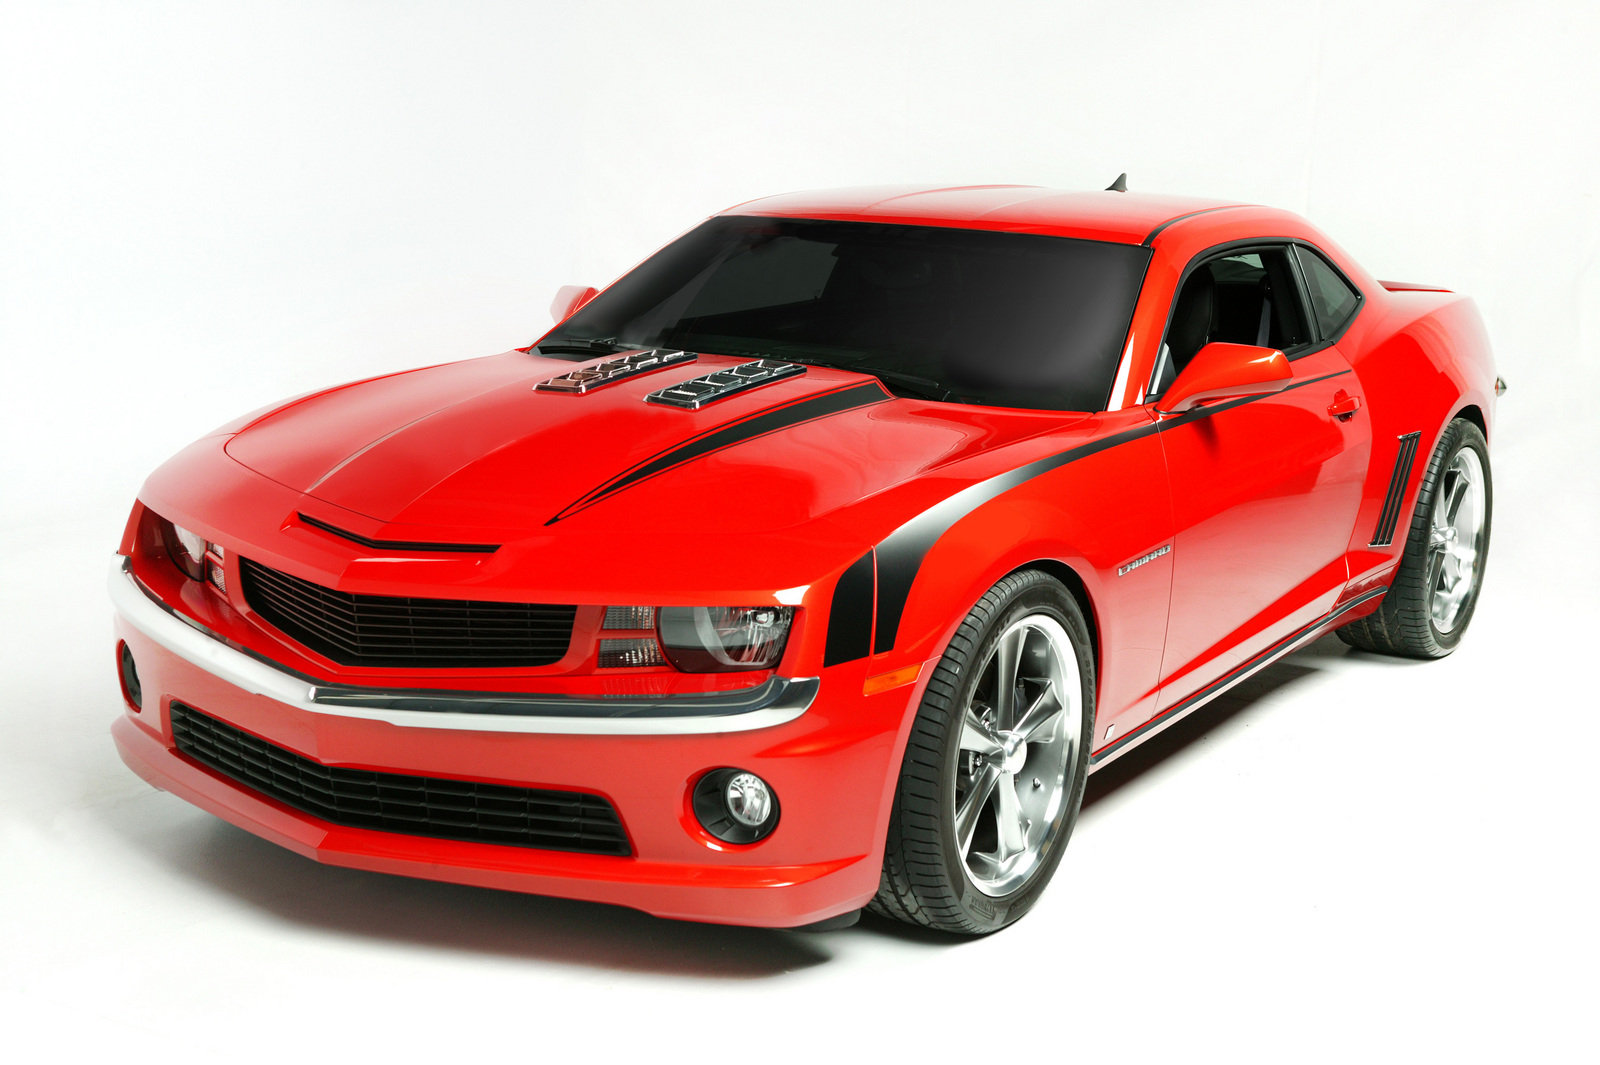 http://pictures.topspeed.com/IMG/crop/201112/chevrolet-camaro-by--7_1600x0w.jpg